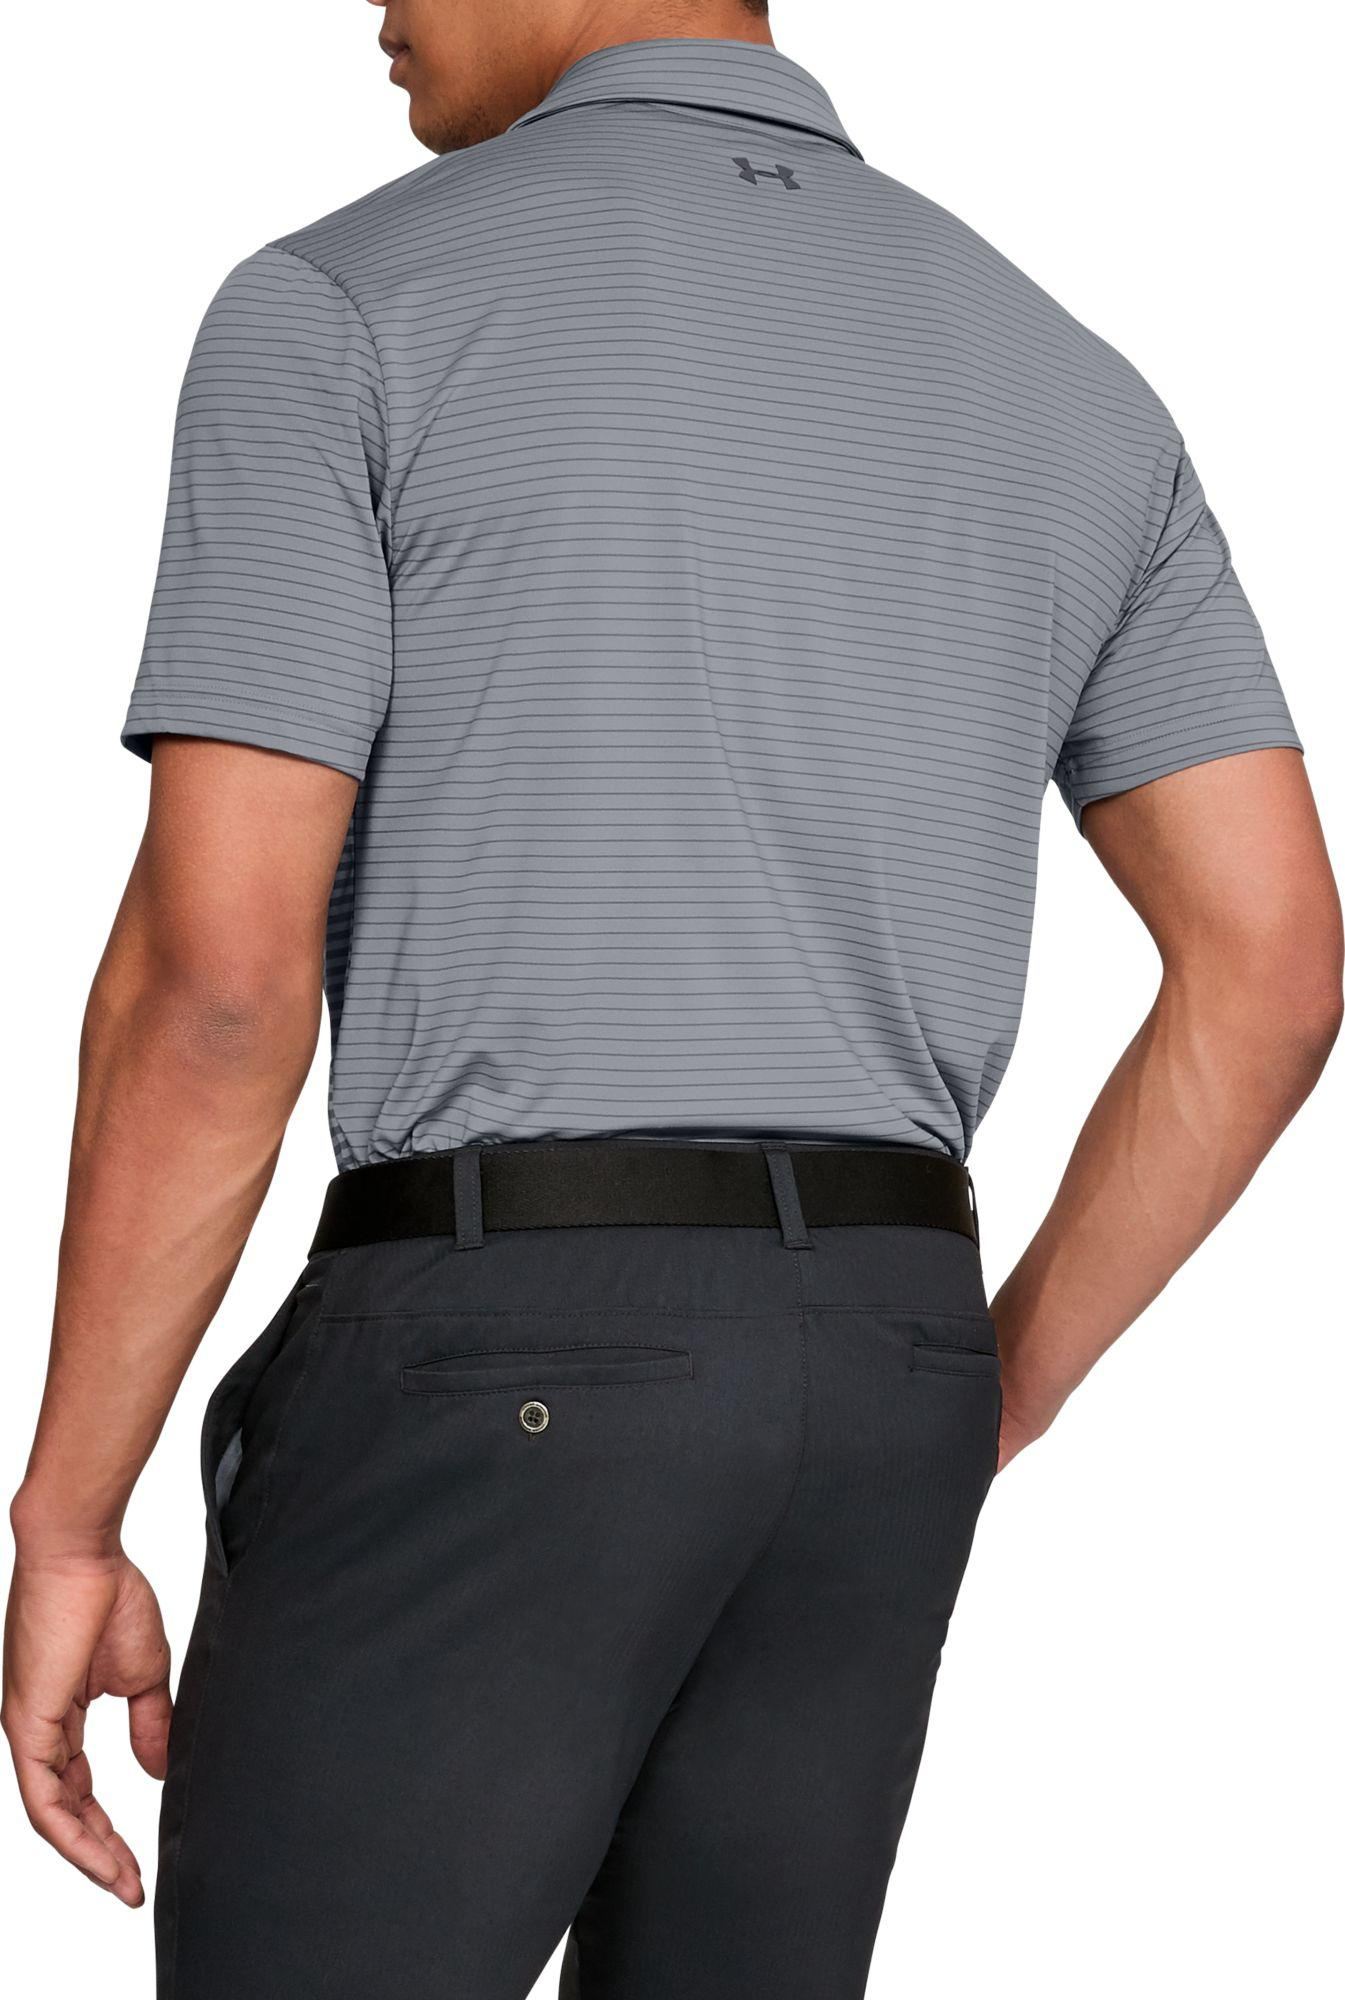 f569a4ab79 Under Armour Playoff Super Stripe Golf Polo in Gray for Men - Lyst